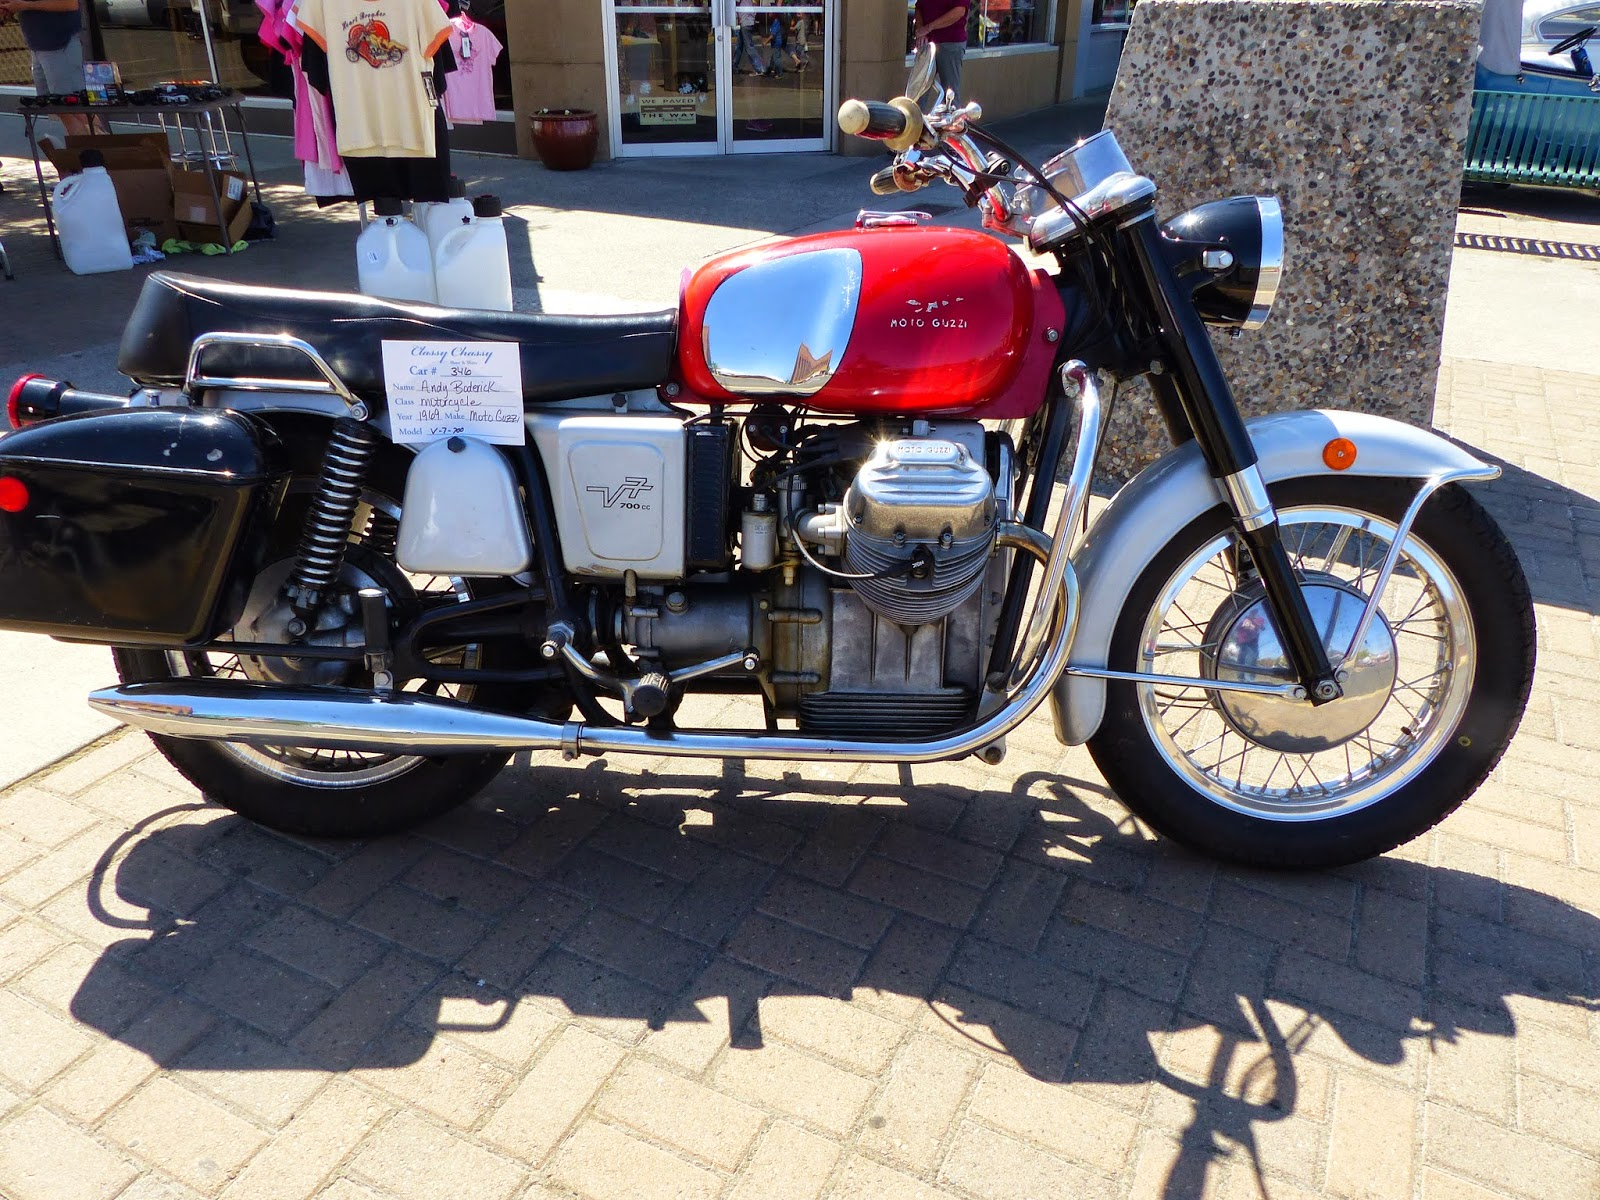 OldMotoDude MotoGuzzi V On Display At The Classy Chassy - Car show display accessories